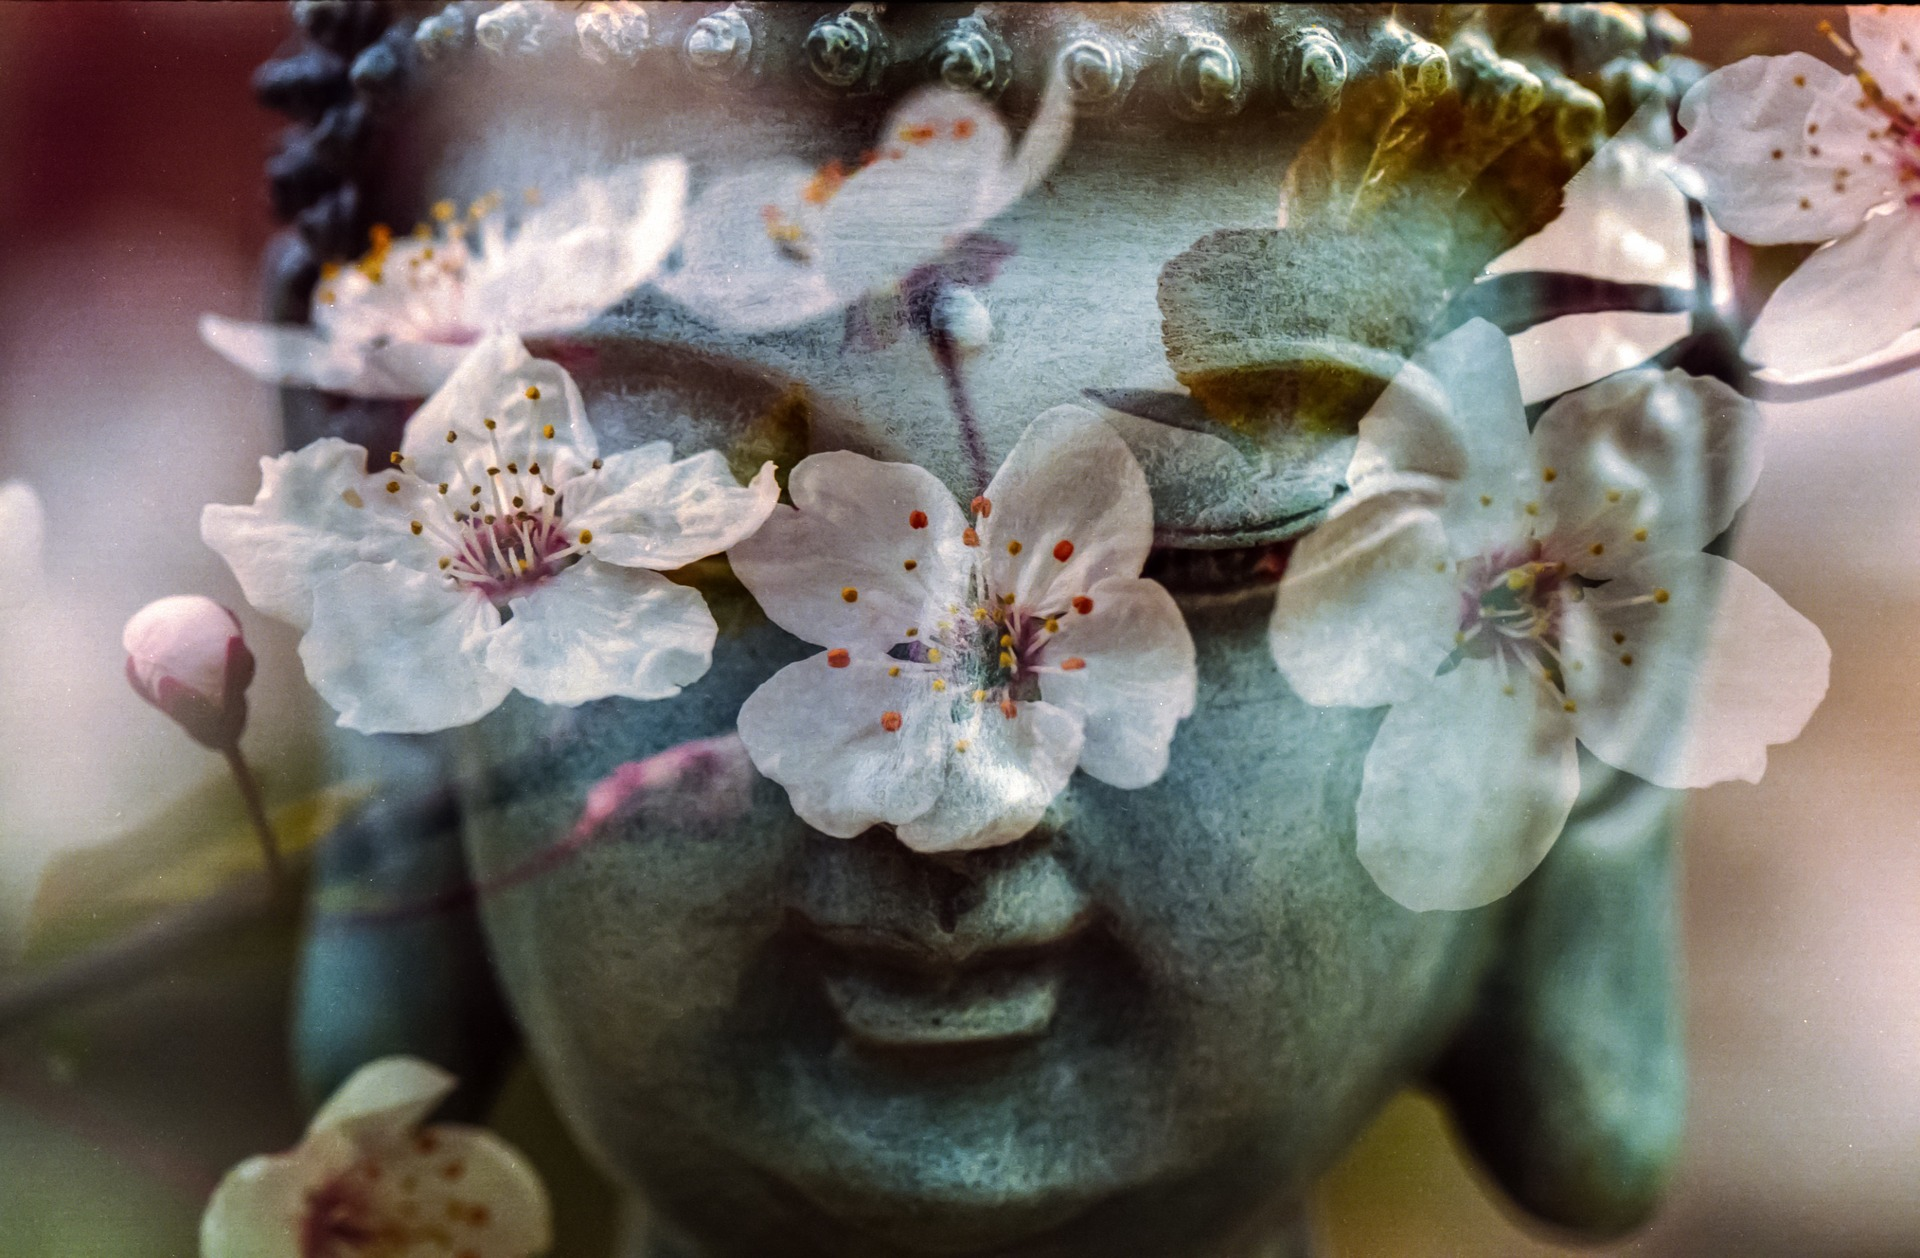 A buddha head status with delicate flowers superimposed